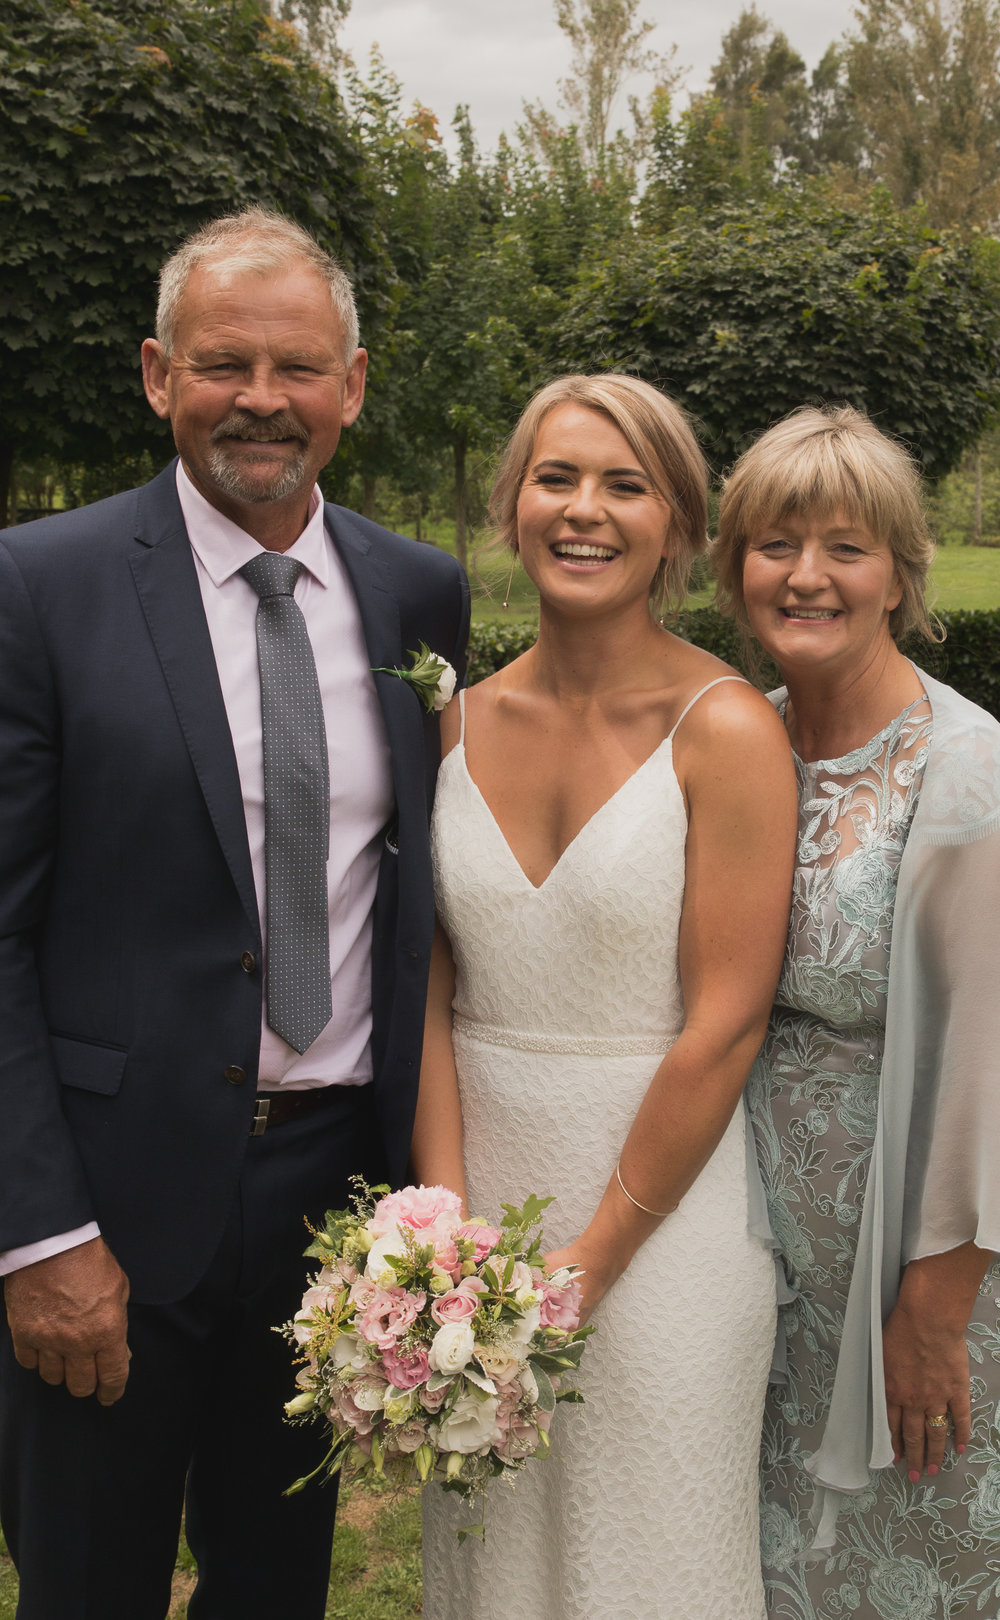 bride and her parents on her wedding day